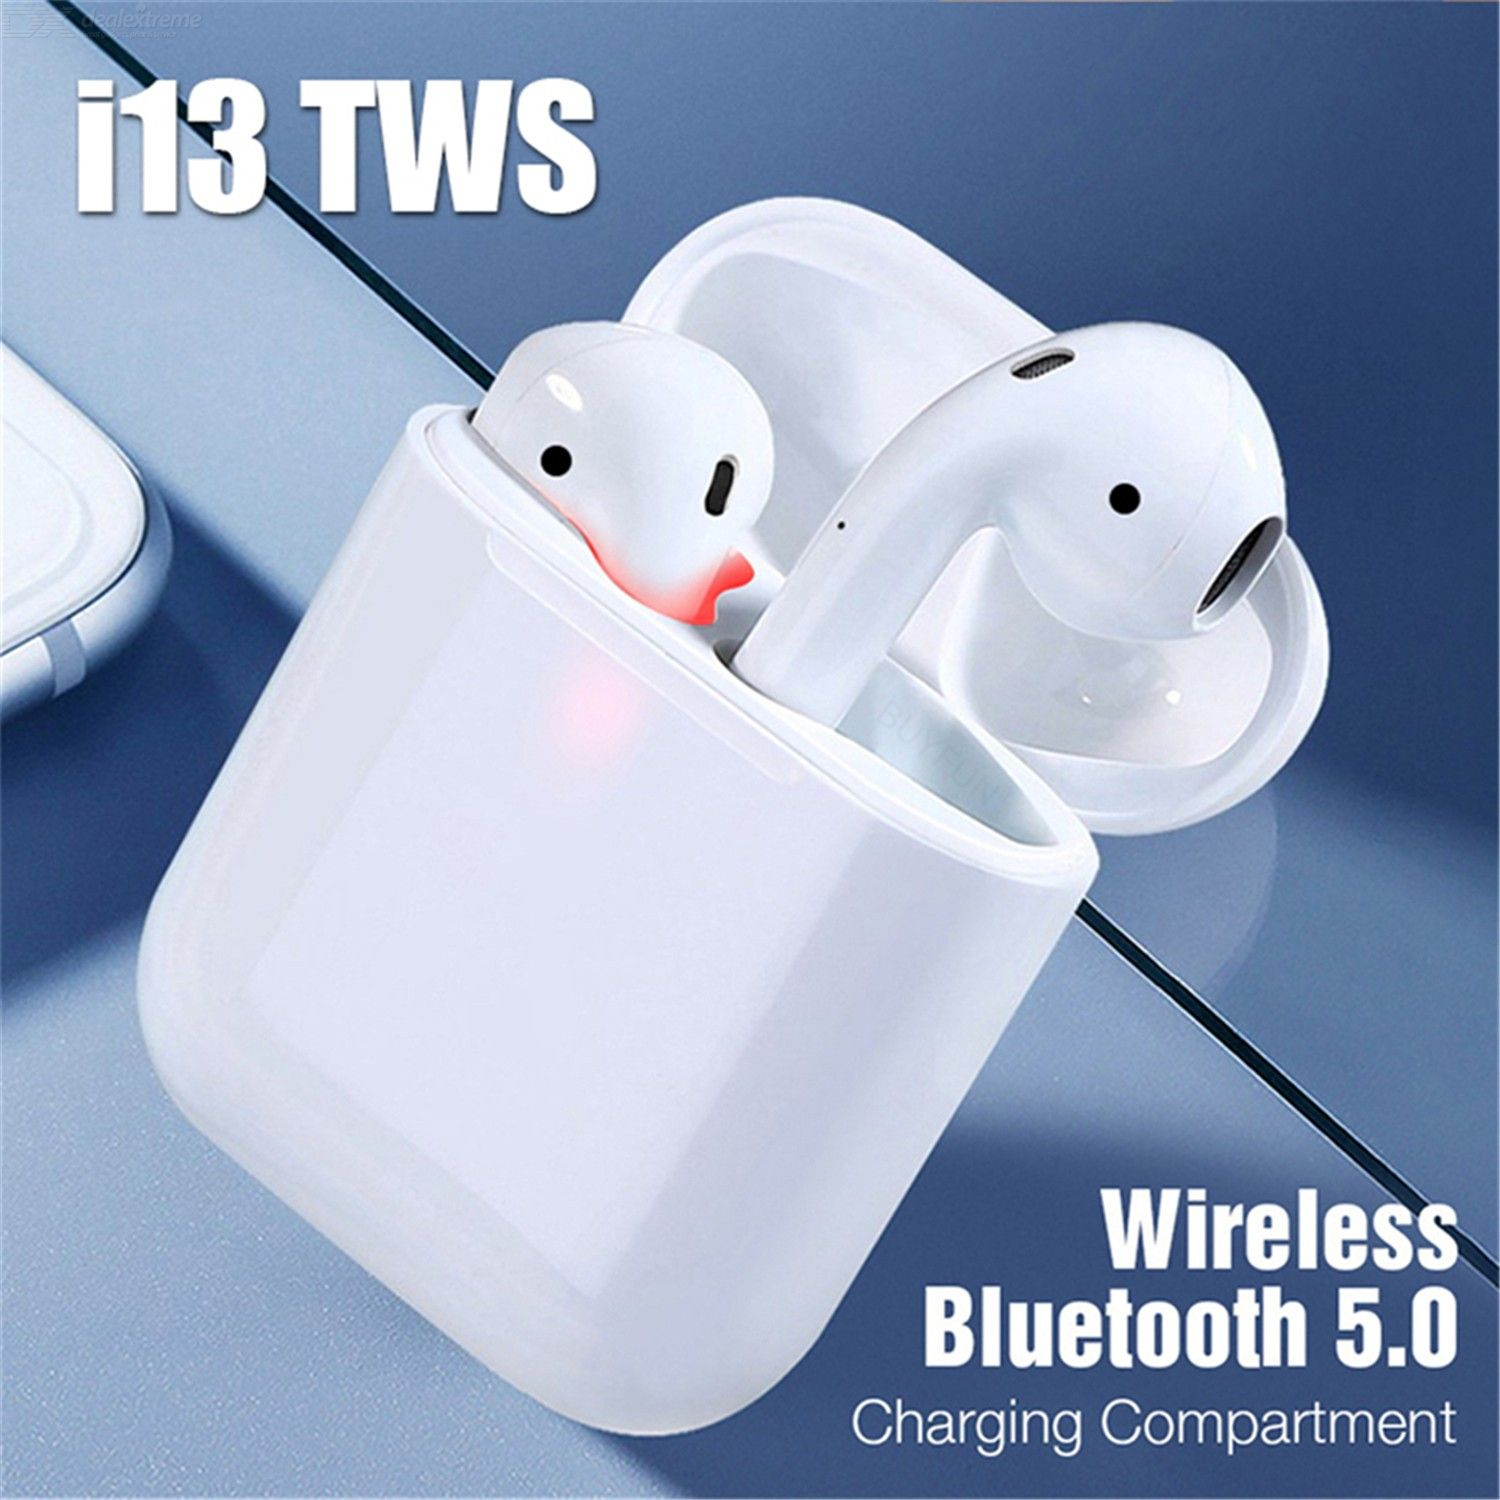 i13 TWS Bluetooth 5.0 Wireless Earphones 3D Stereo Sound Smart Touch Earbuds with Mic Charging Case for All Bluetooth Devices